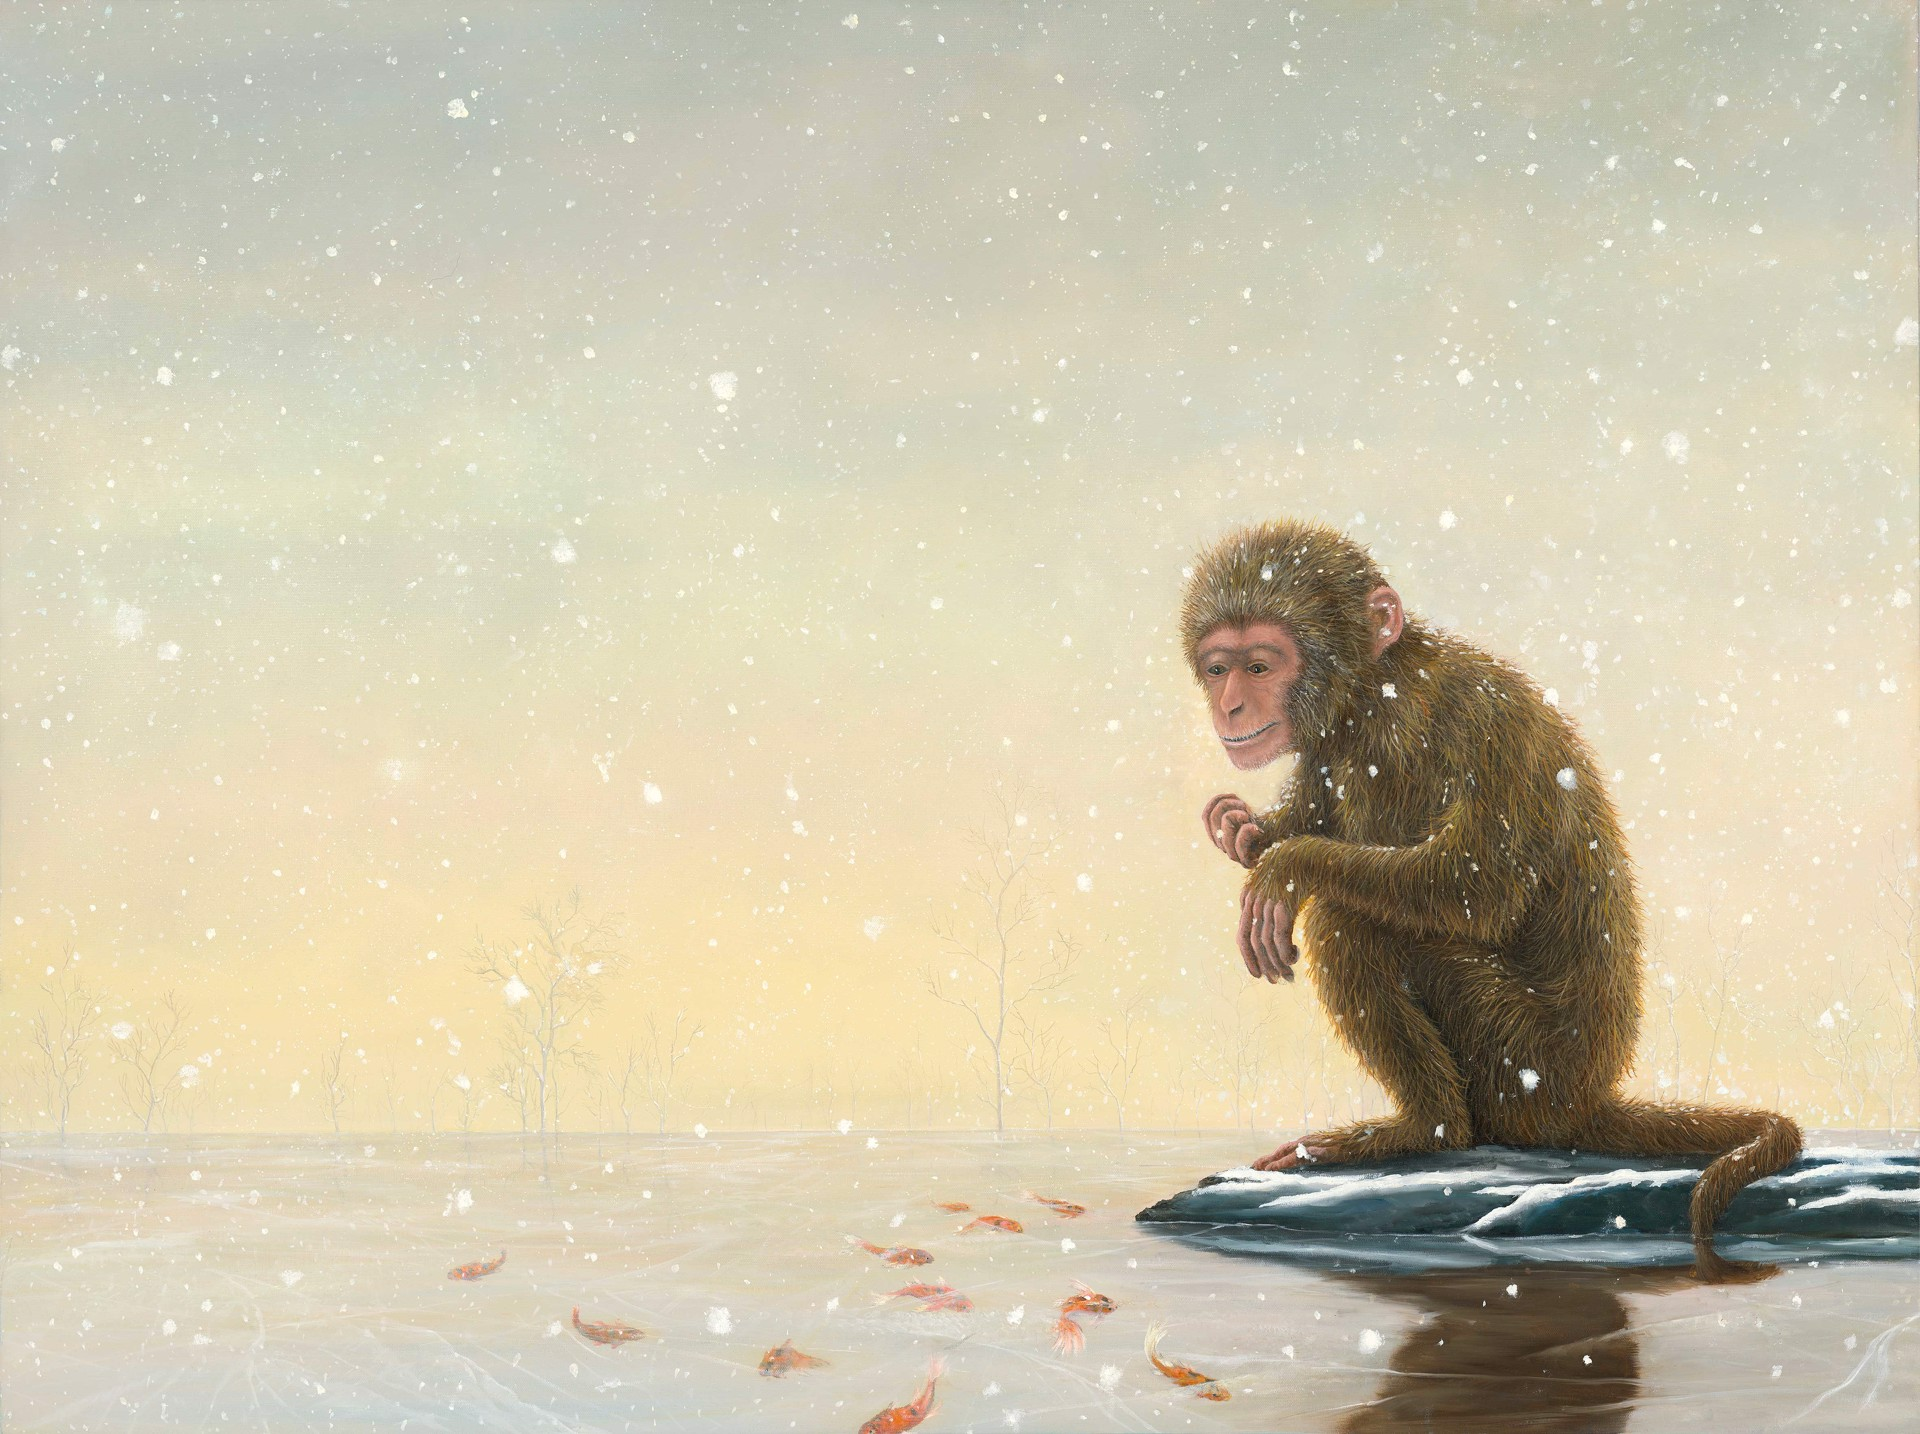 Mono No Aware by Robert Bissell